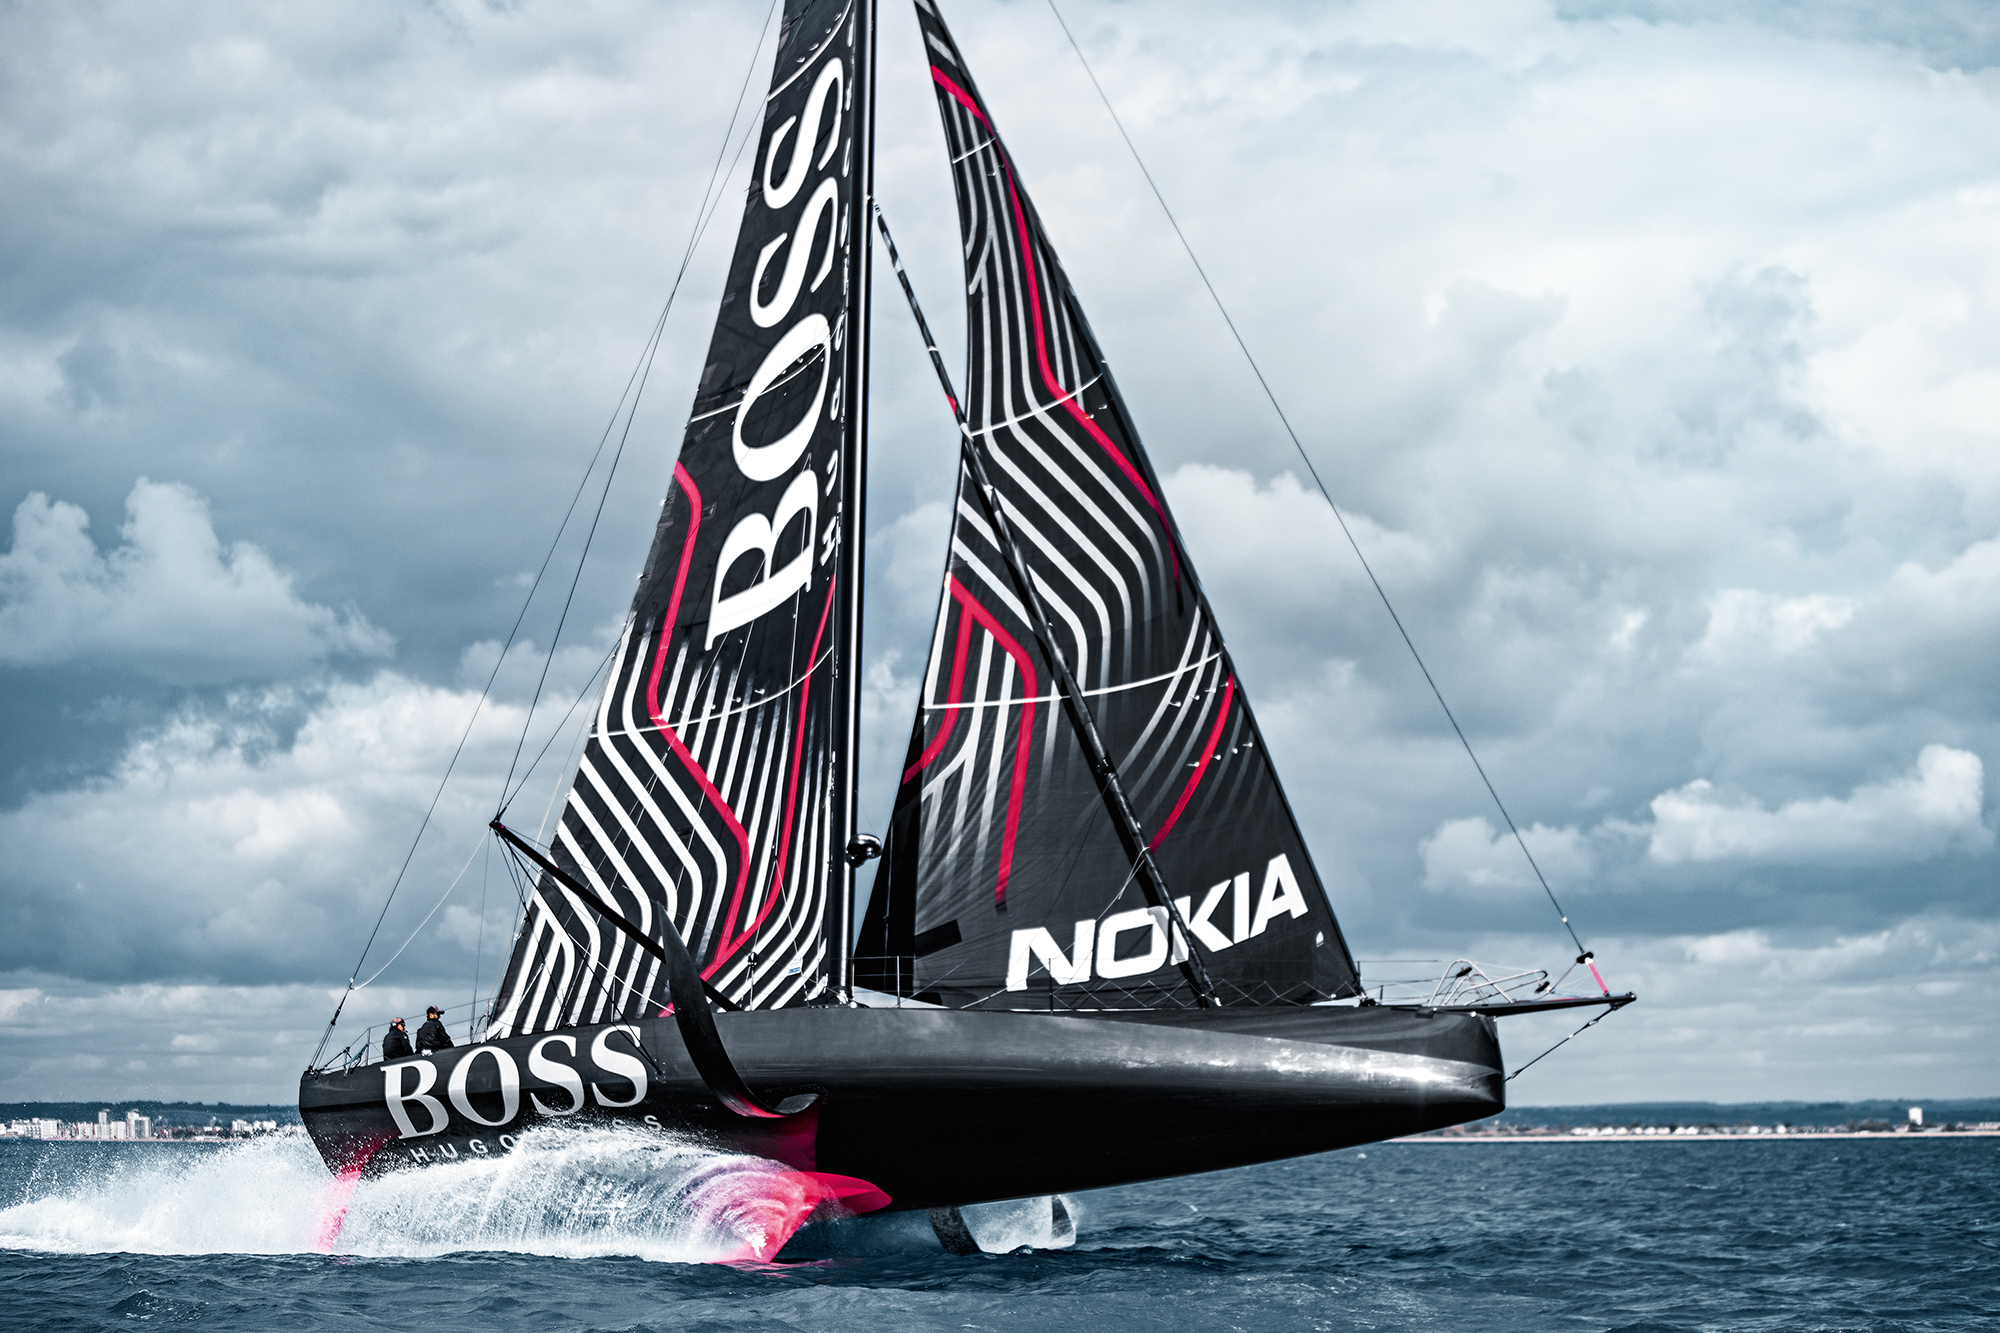 Blue Fin completes work on the new HUGO BOSS